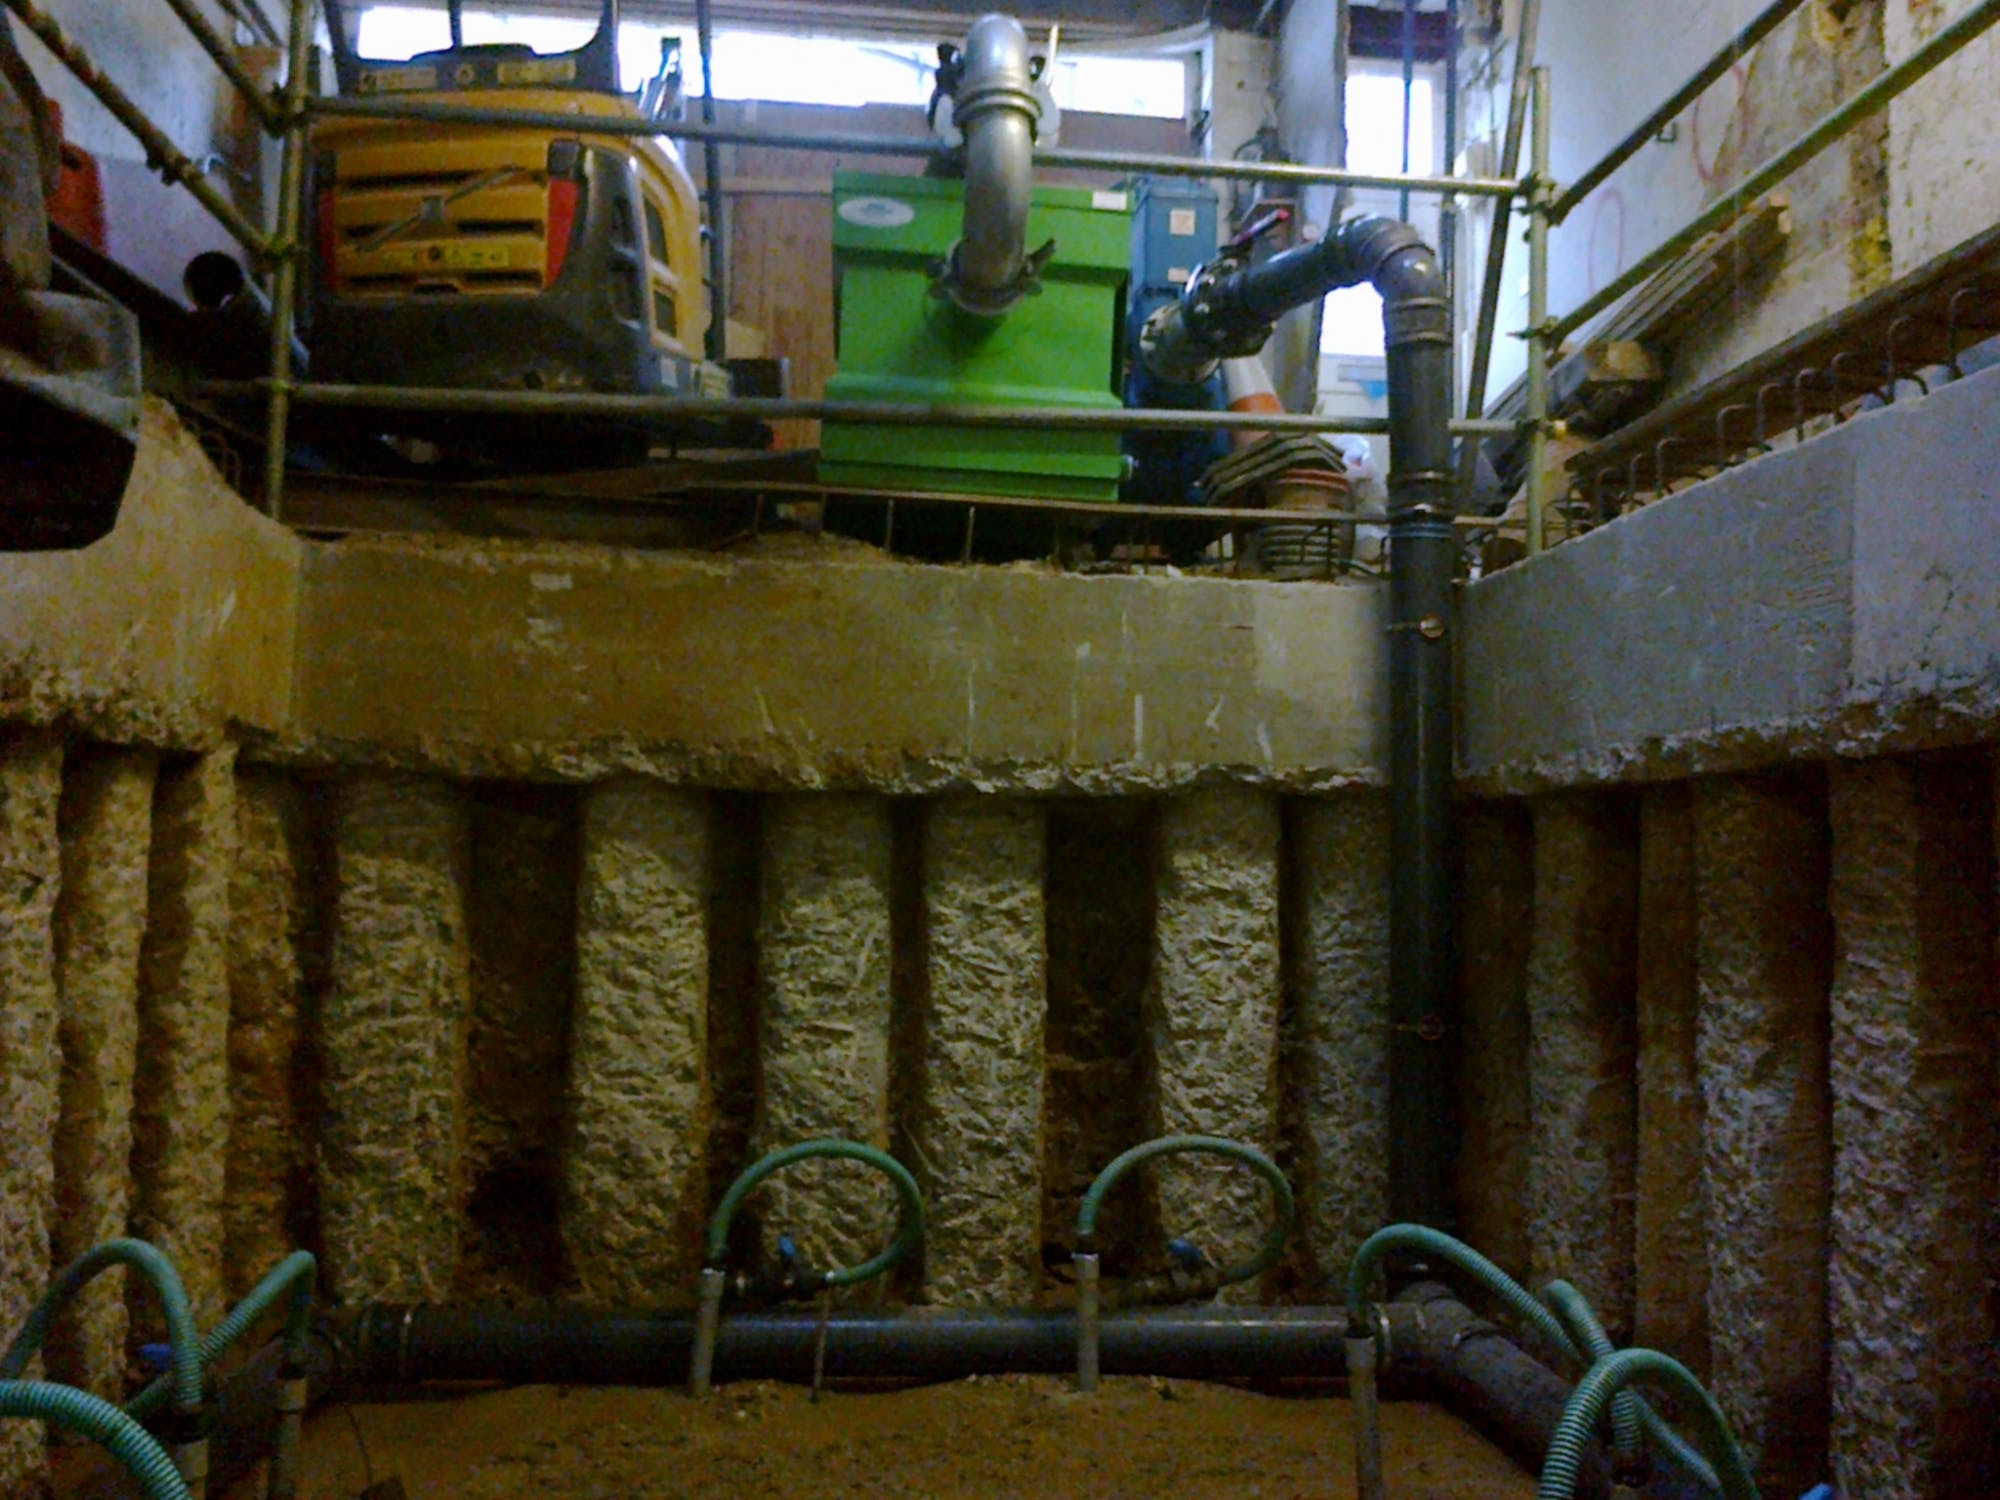 Basement dewatering with contiguous pile walls